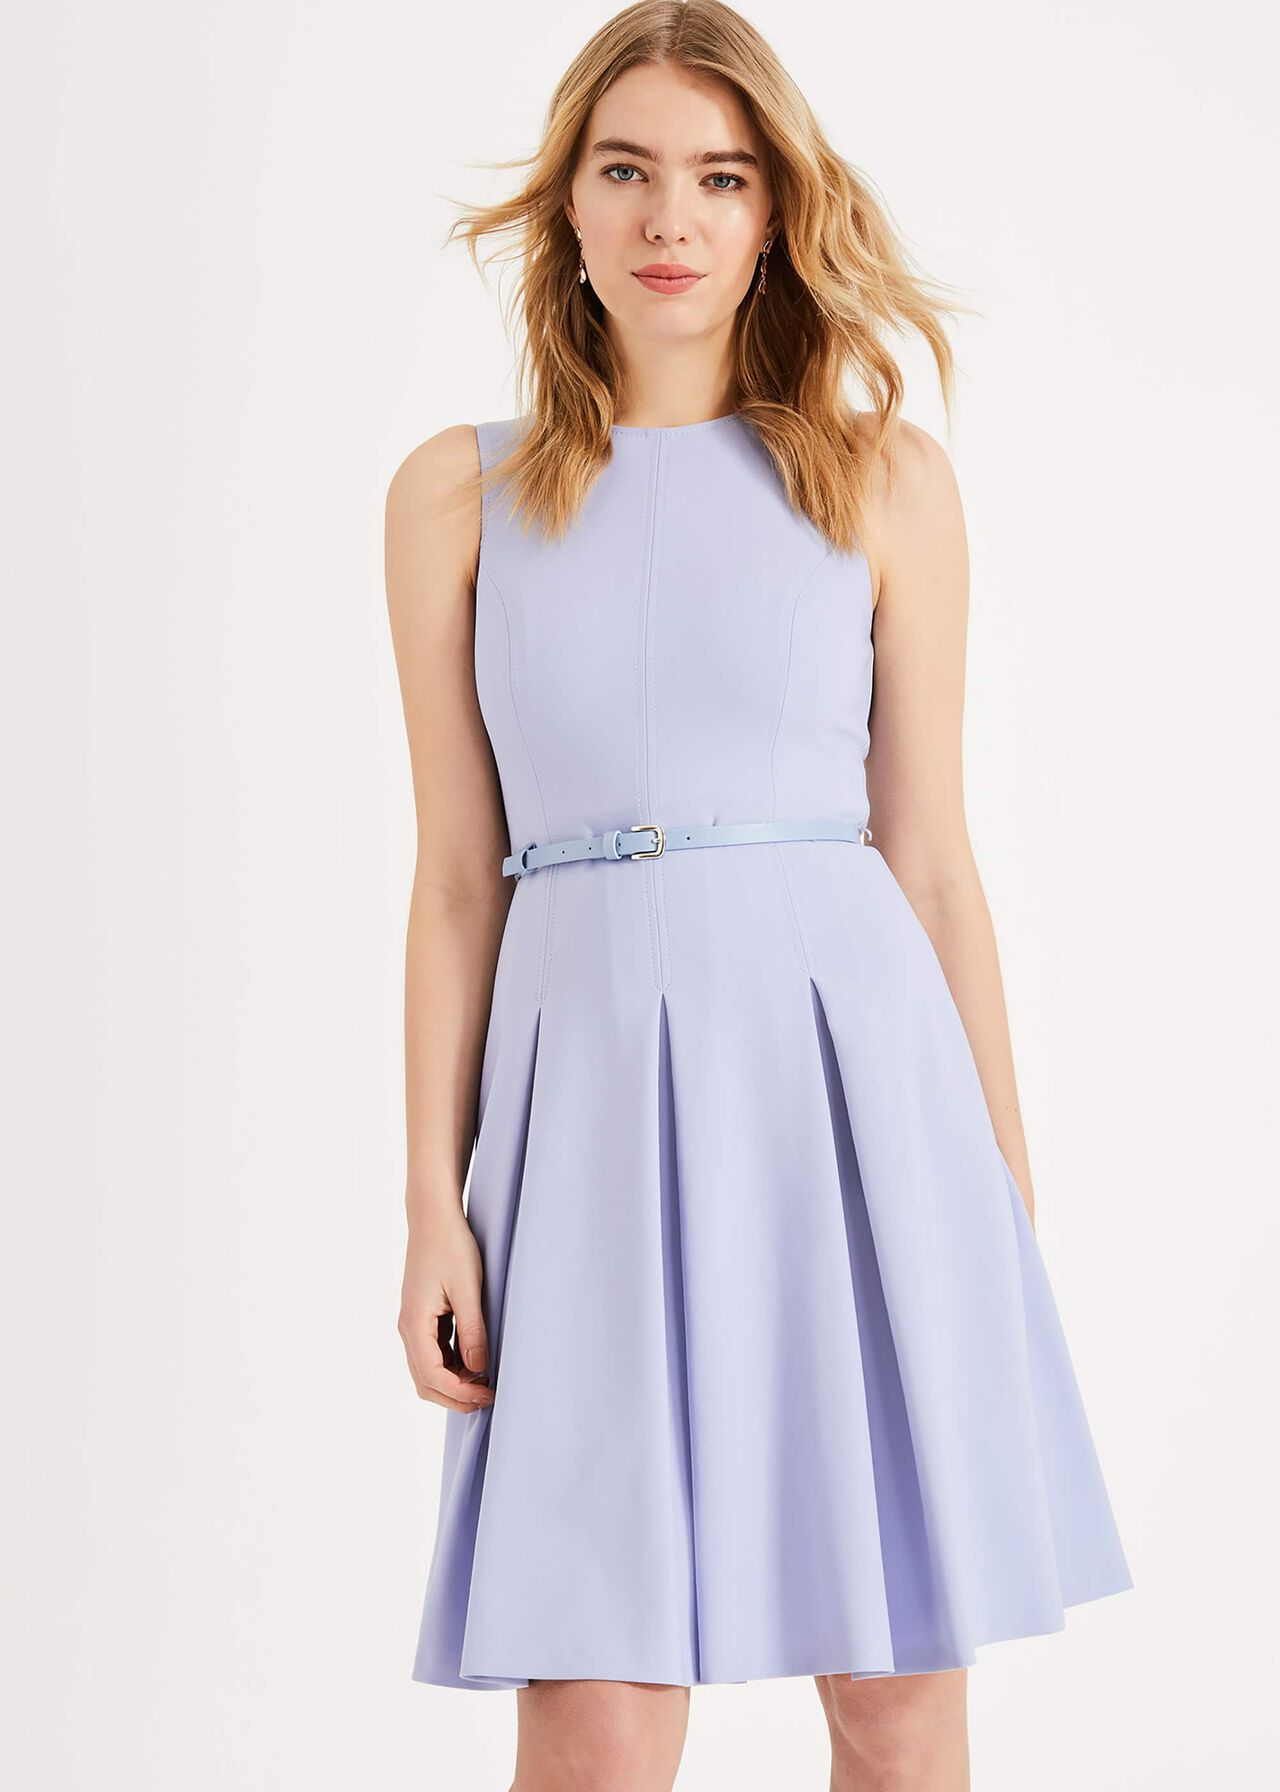 Elidah Belted Dress Phase Eight